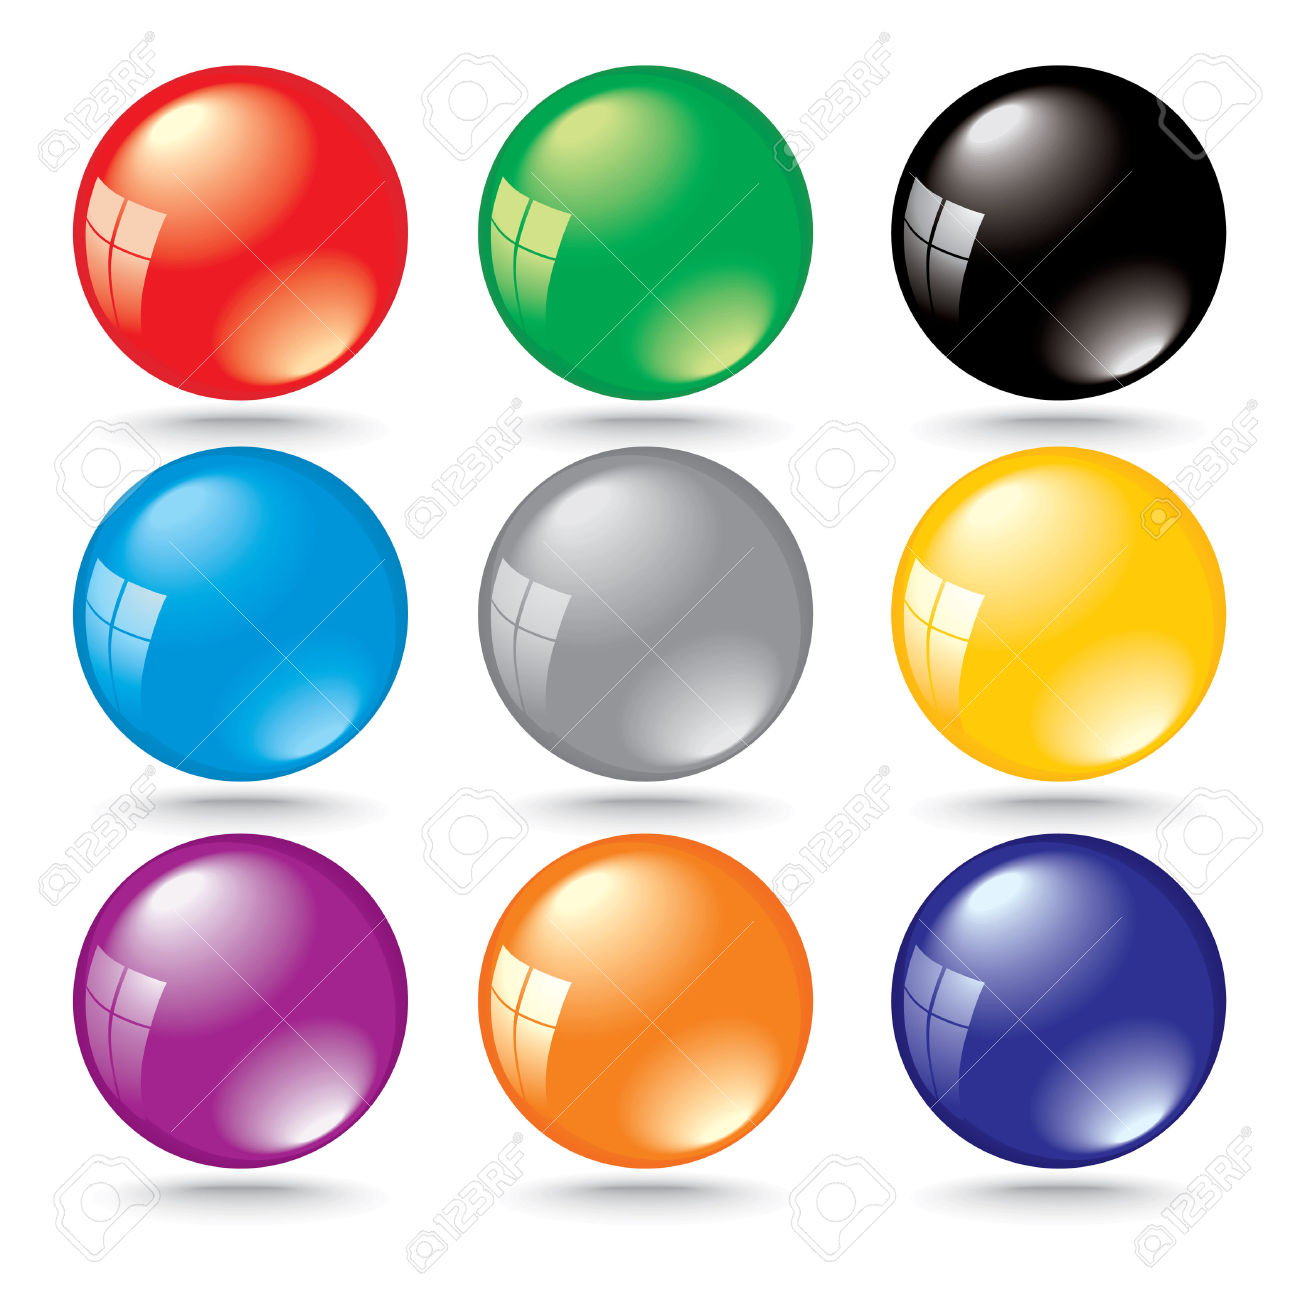 Shiny 3d Color Bubbles With Window Reflection Royalty Free.